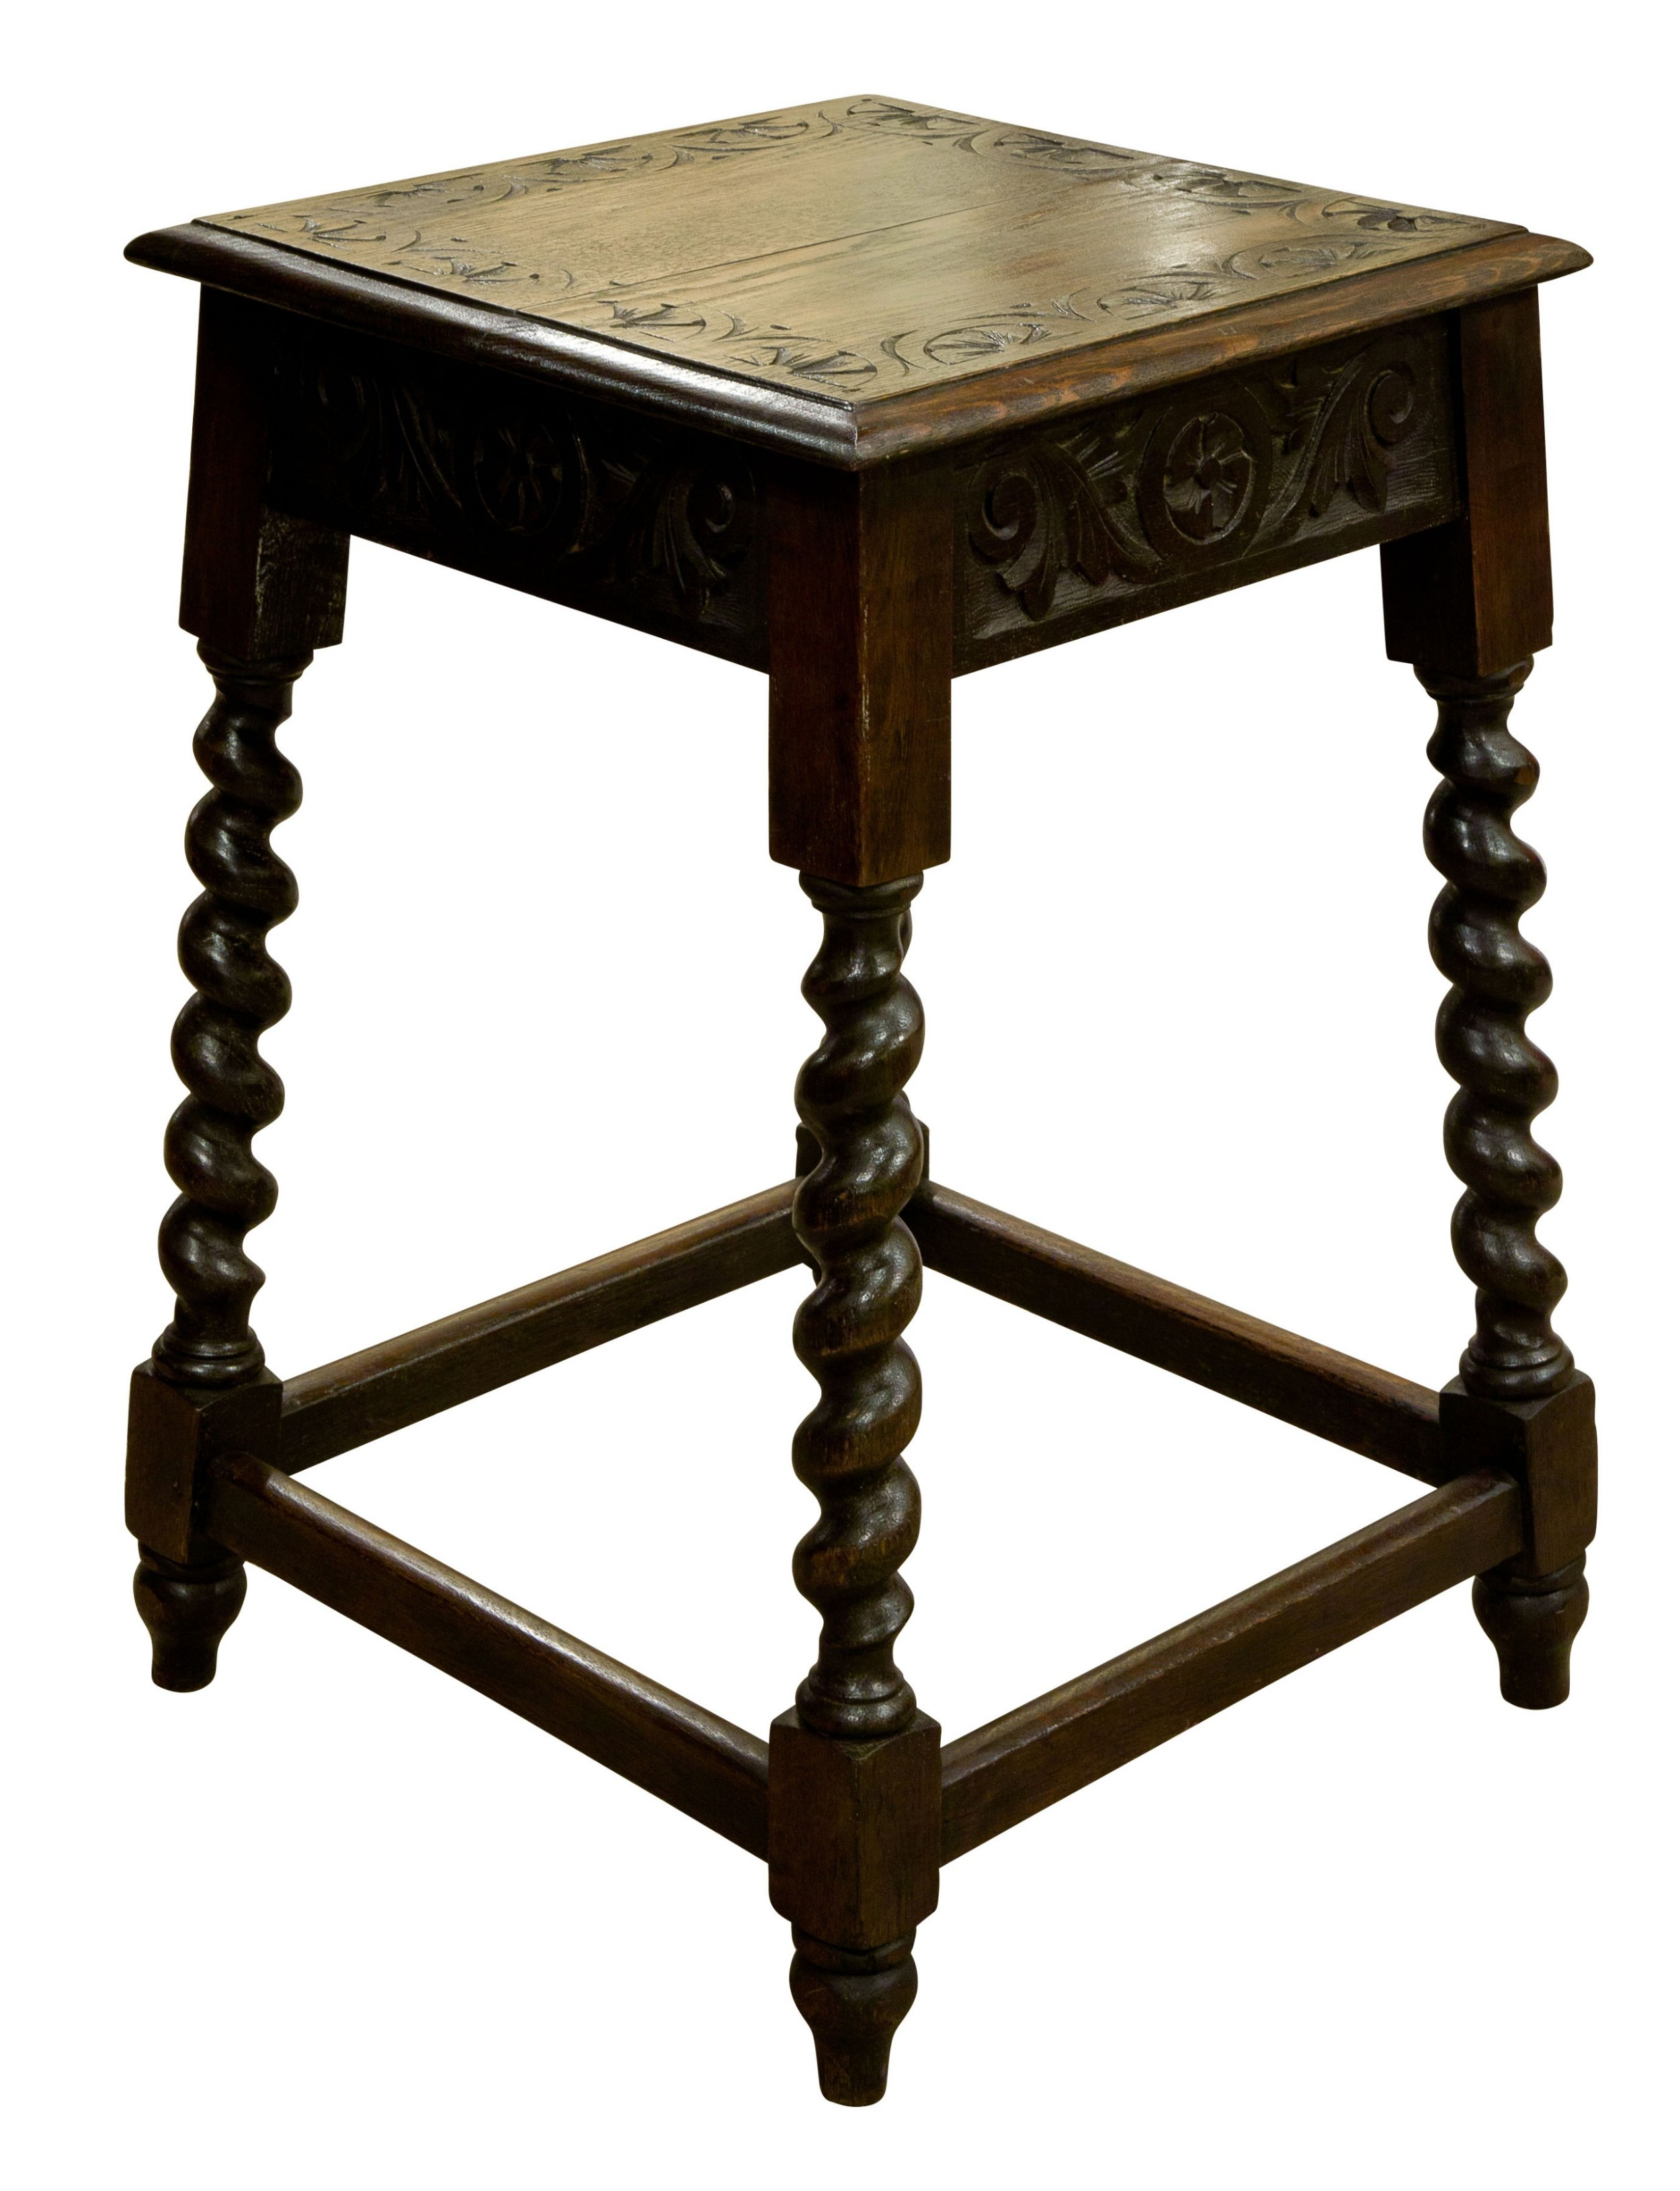 carved oak occasional table c1880